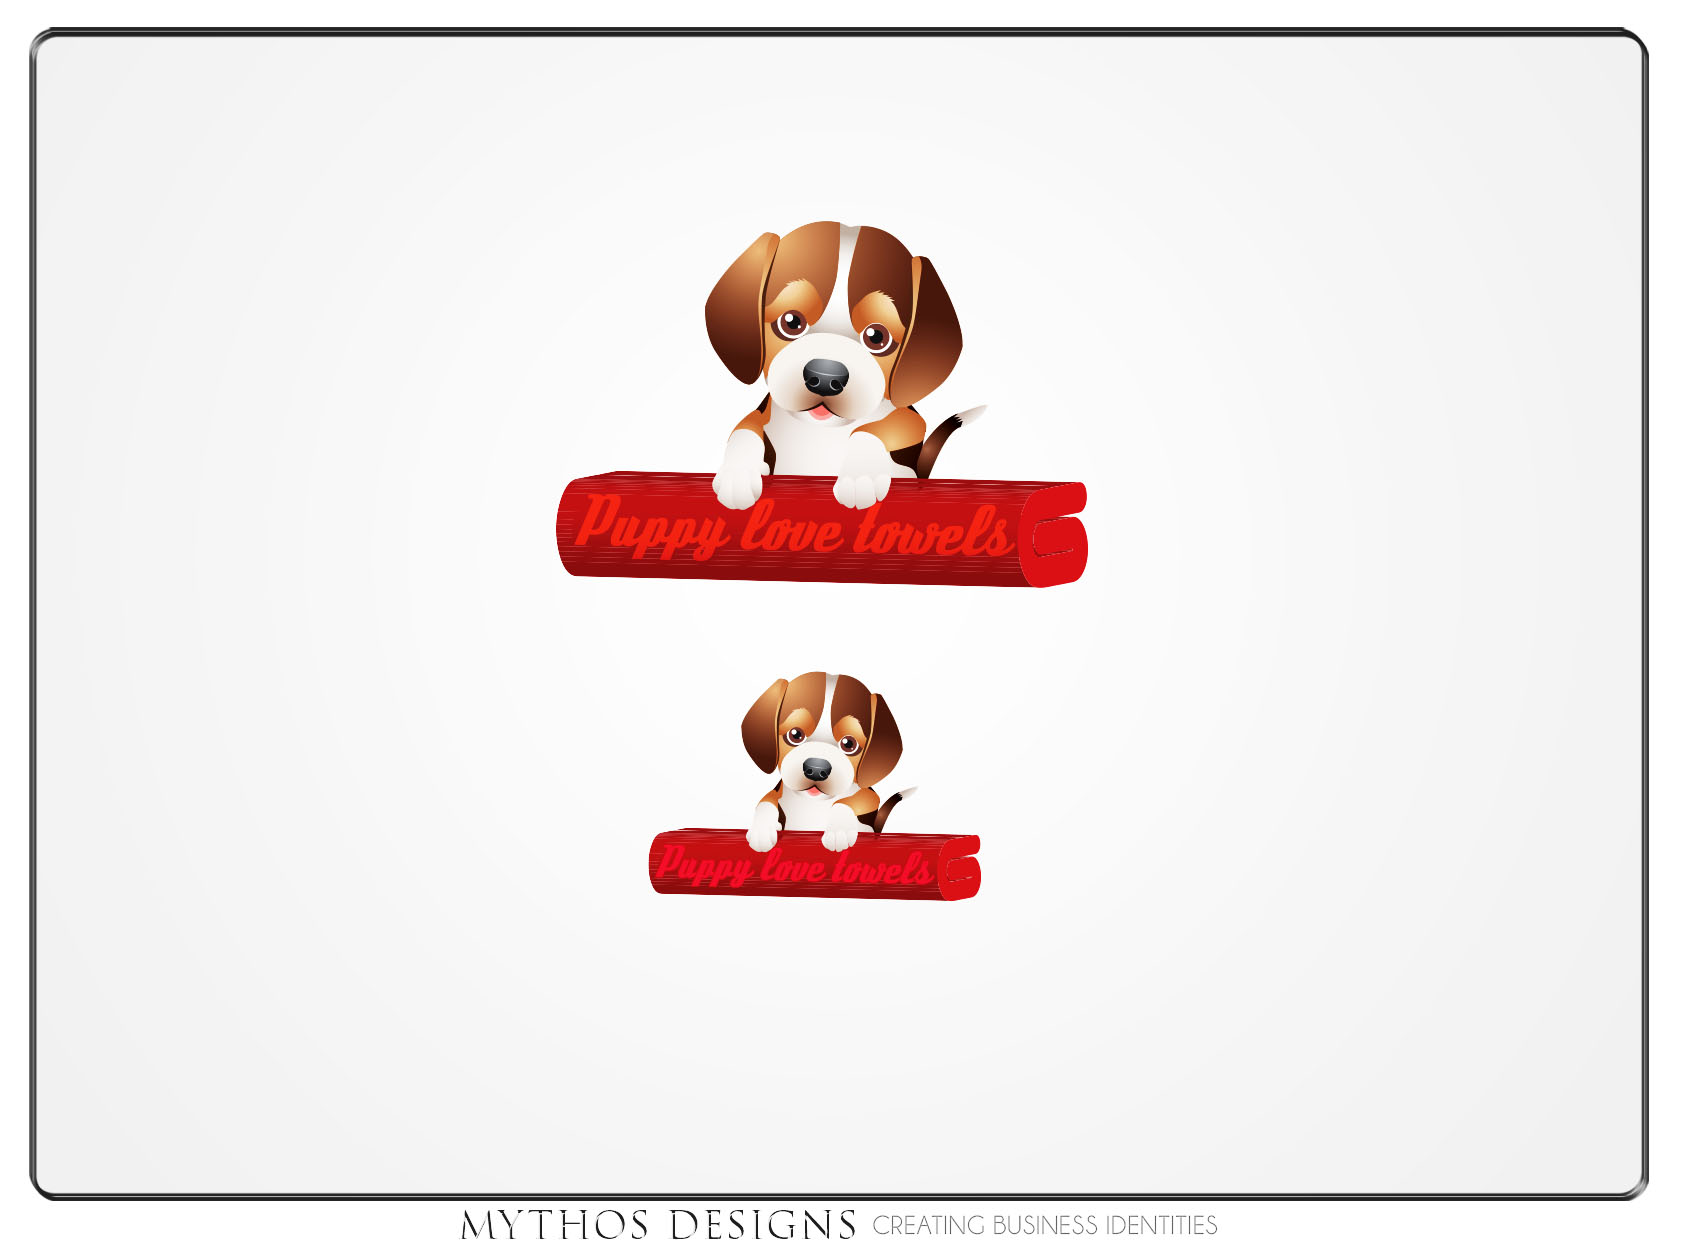 Logo Design by Mythos Designs - Entry No. 63 in the Logo Design Contest Artistic Logo Design for Puppy Love Towels.